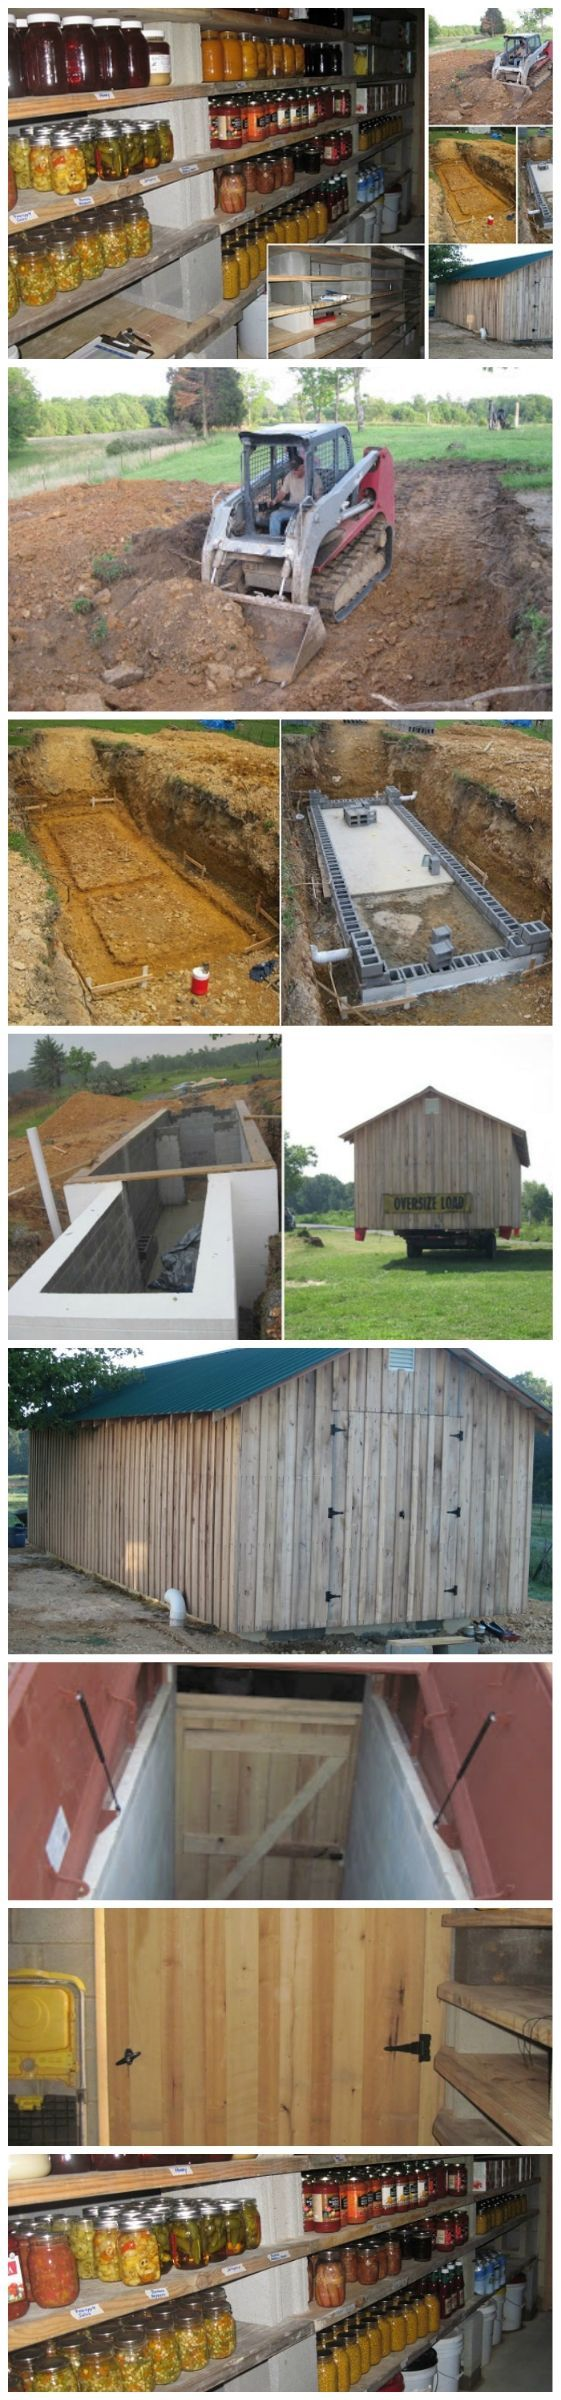 How To Build A Root Cellar – Tutorial https://plus.google.com/+GoodsHomeDesign/posts/UDeswd8ZDDB?pid=6091283488654761474&oid=112899258933337832969&utm_content=buffer1b491&utm_medium=social&utm_source=pinterest.com&utm_campaign=buffer